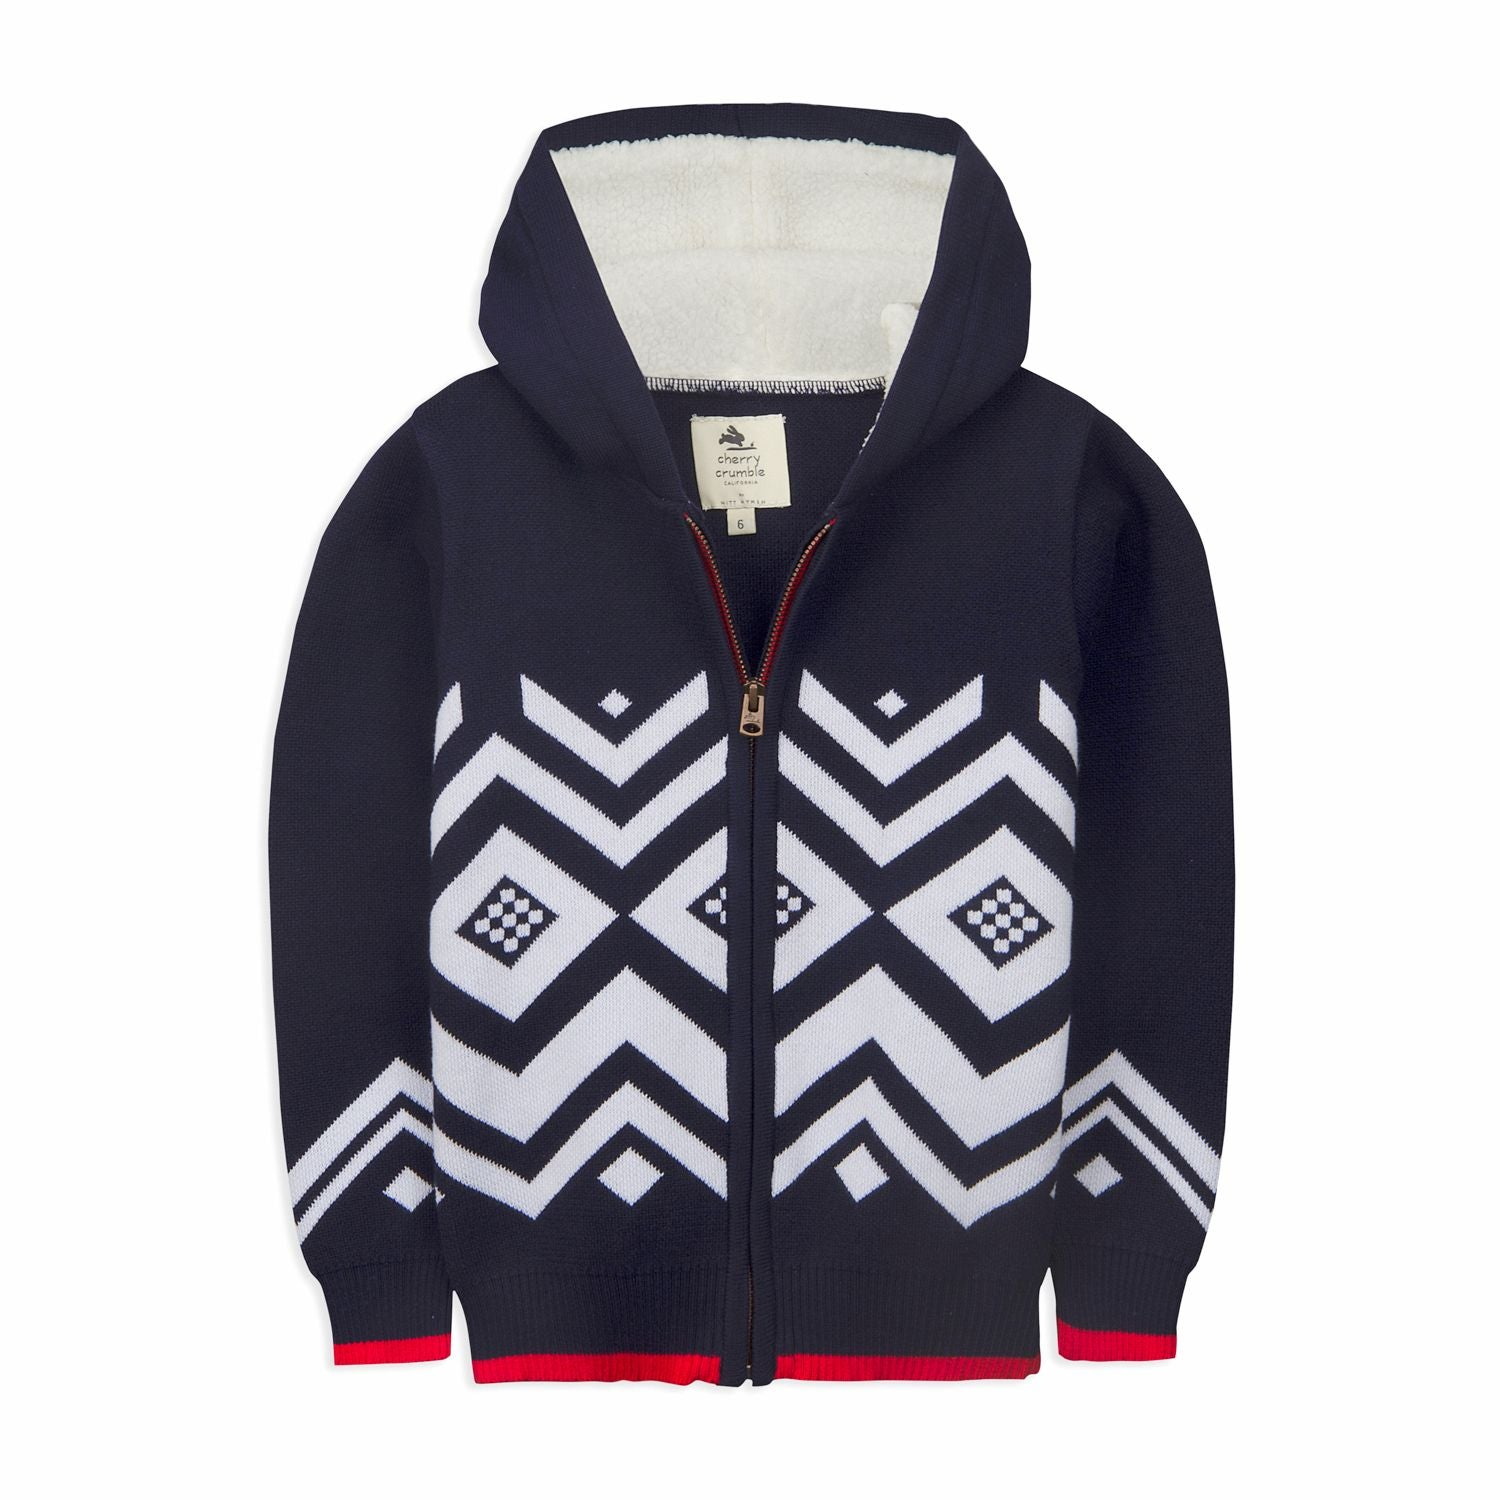 Fair Sweater for Boys